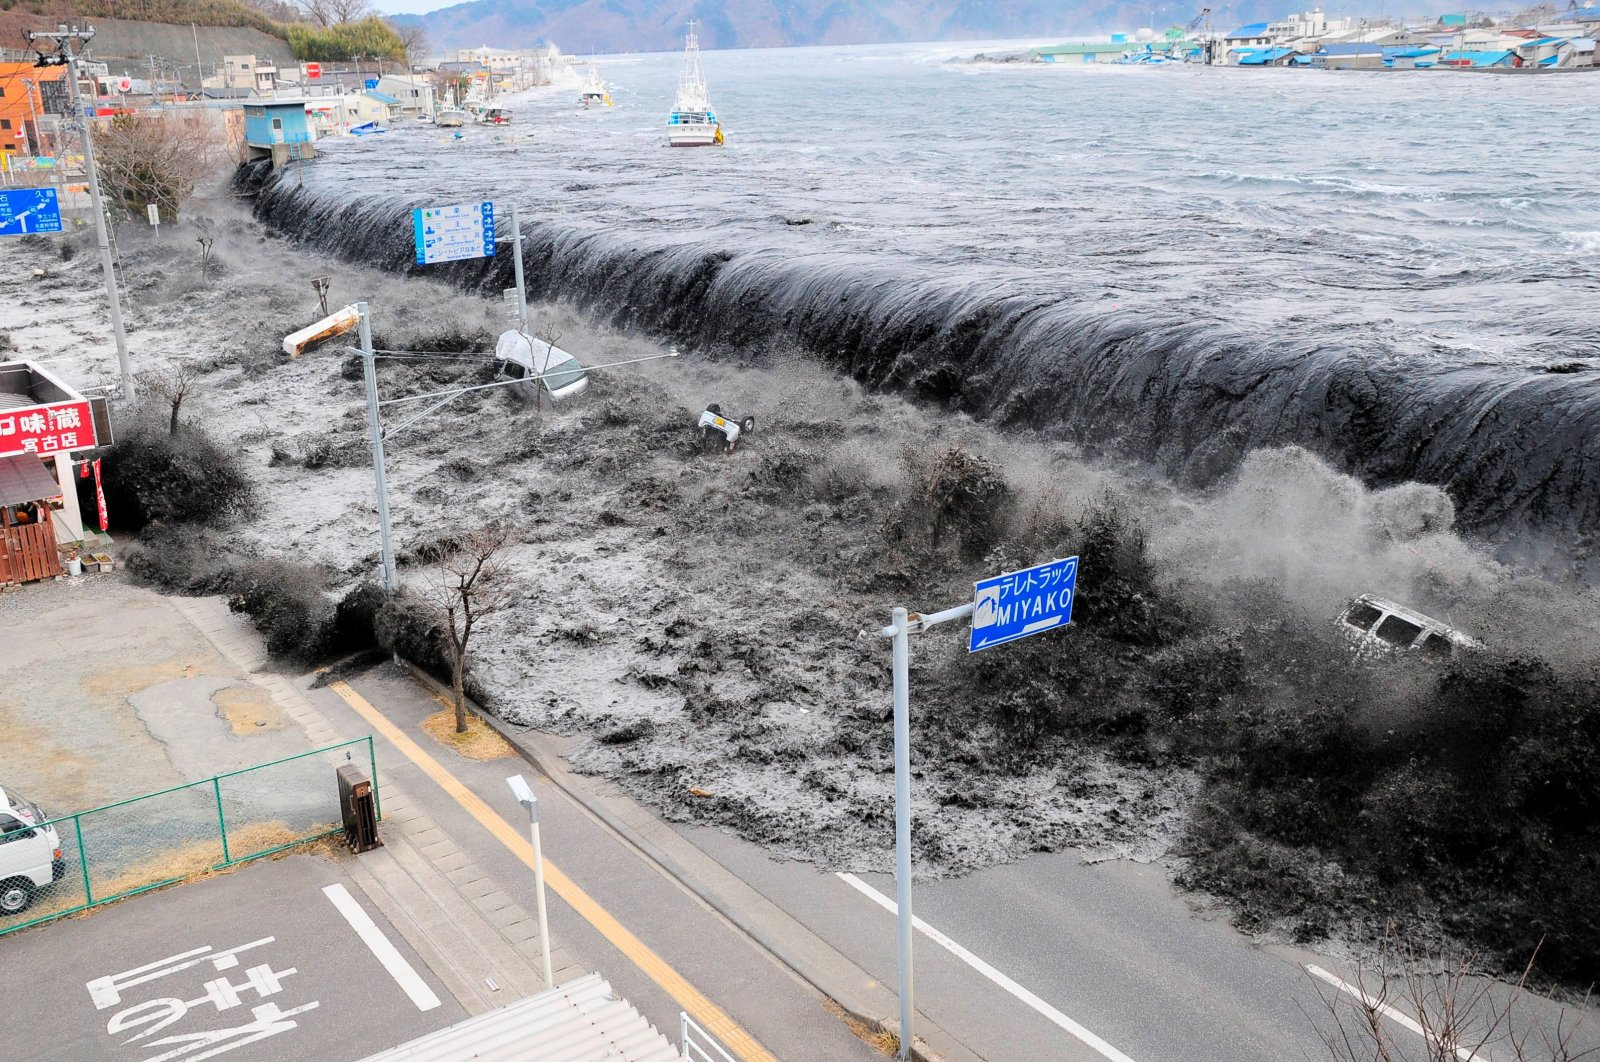 In this file photo a wave approaches Miyako City from the Heigawa estuary in Iwate Prefecture after the 8.9 magnitude earthquake struck the area on March 11, 2011. (Reuters)